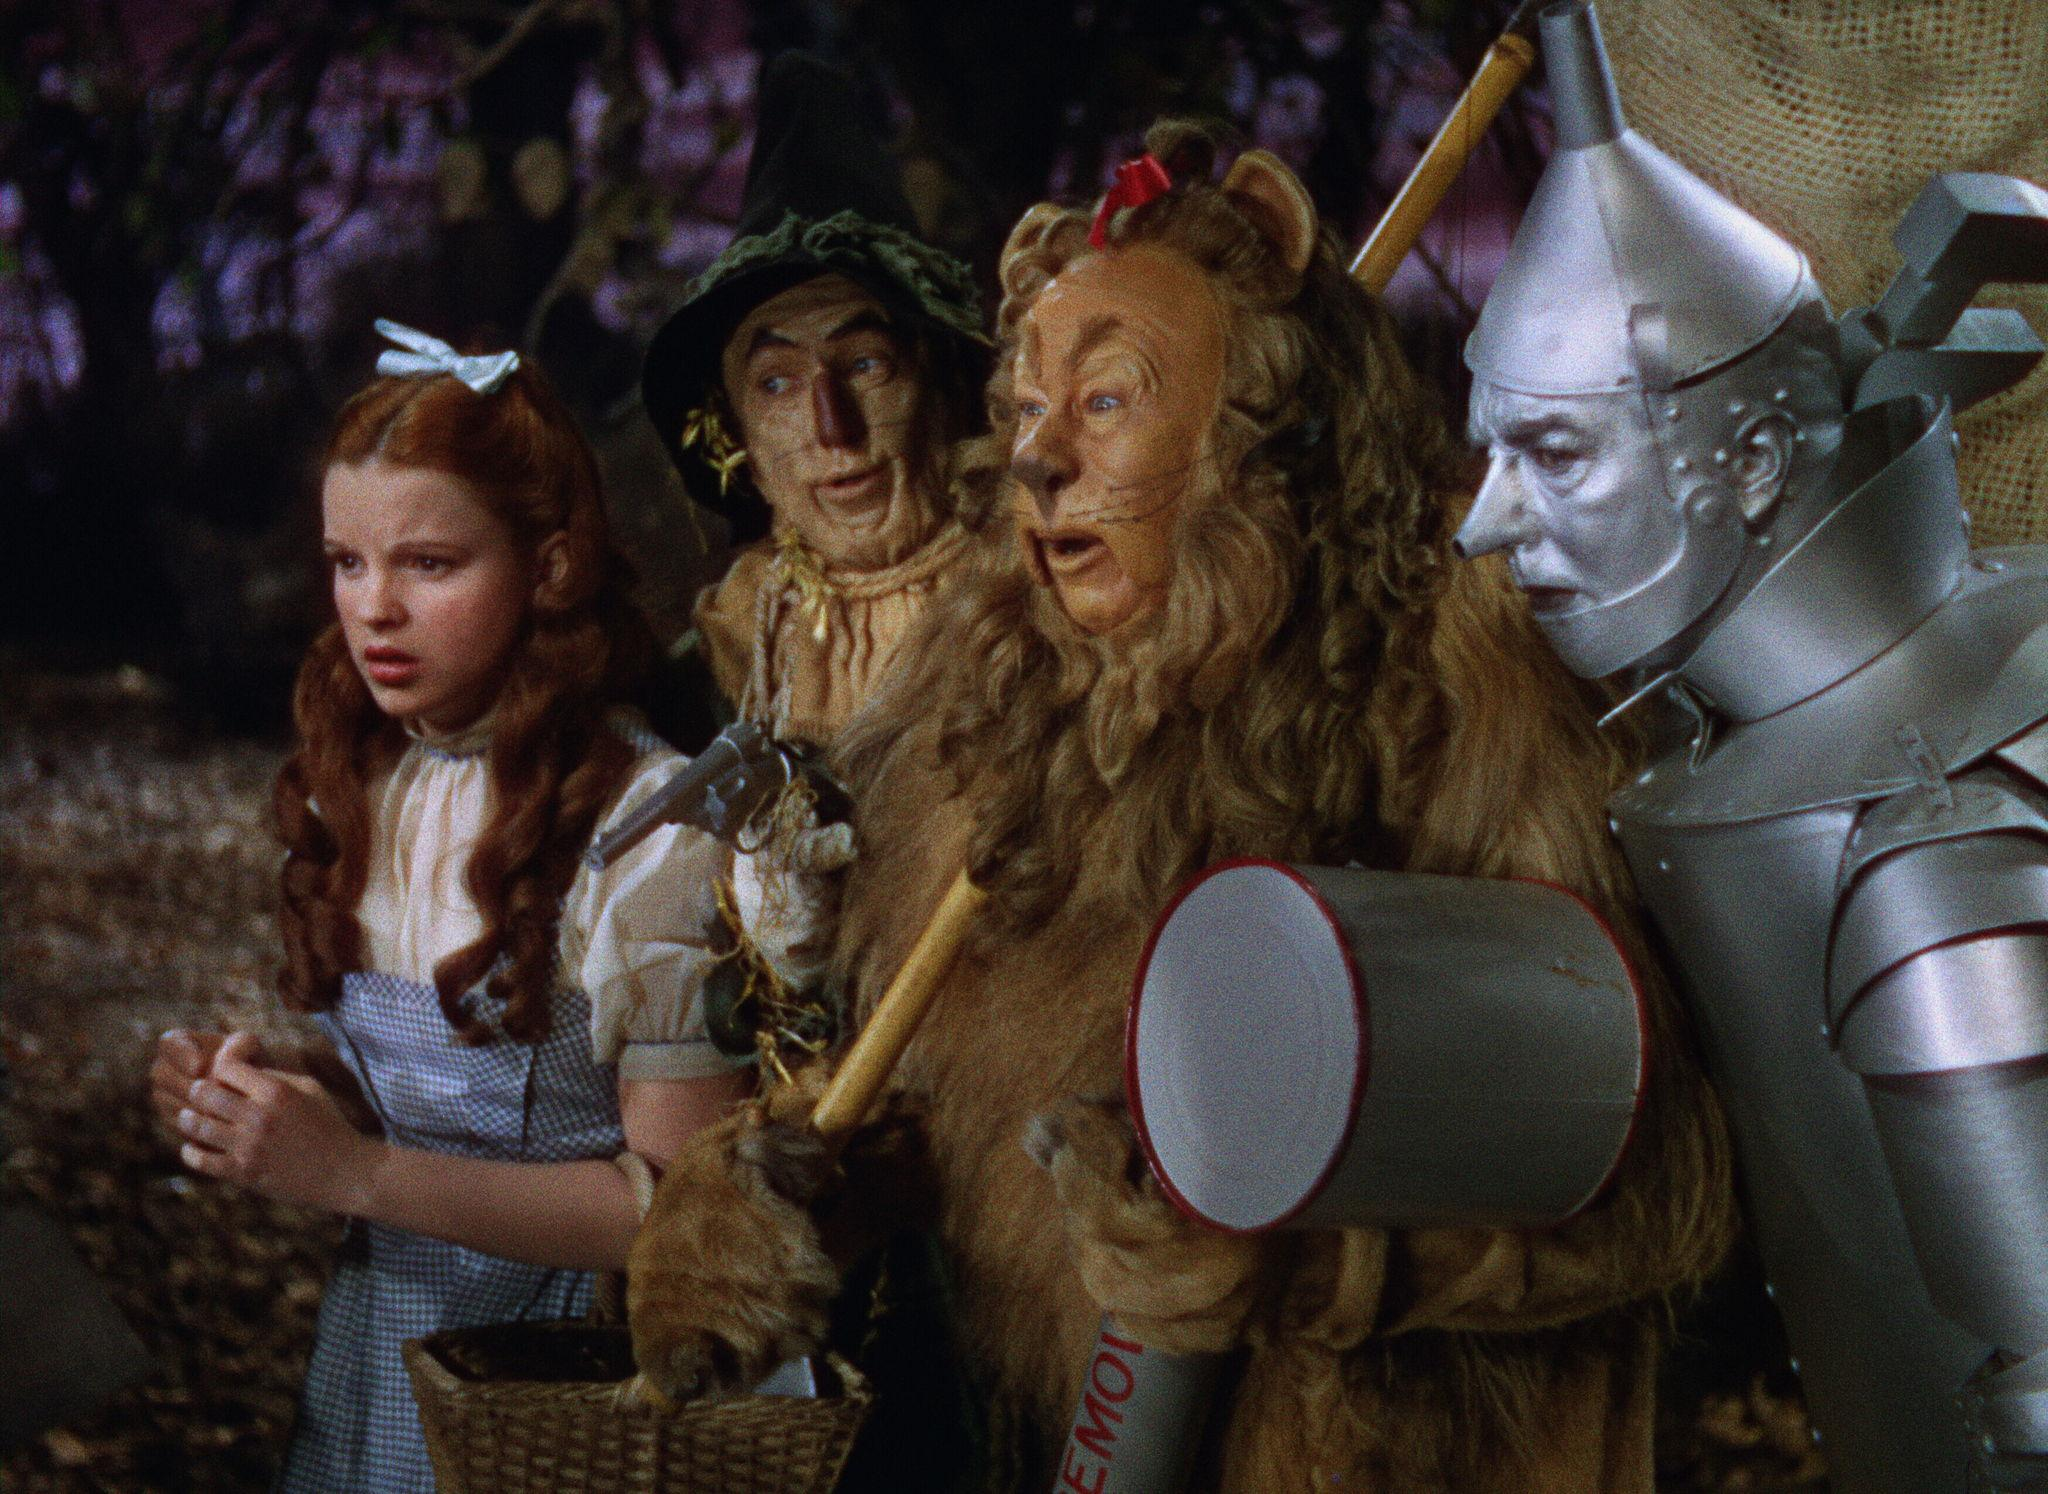 Wizard Of Oz Funny Quotes Quotesgram. The Nightmare Before Christmas Decorations. Rooms For Rent Westchester Ny. Butterfly Decorations For Home. Kid Room Furniture. Decorative Floor Lamp. Living Room Design Pictures. Formal Dining Room Decorating Ideas. Hotels With Jacuzzi In Room Queens Ny